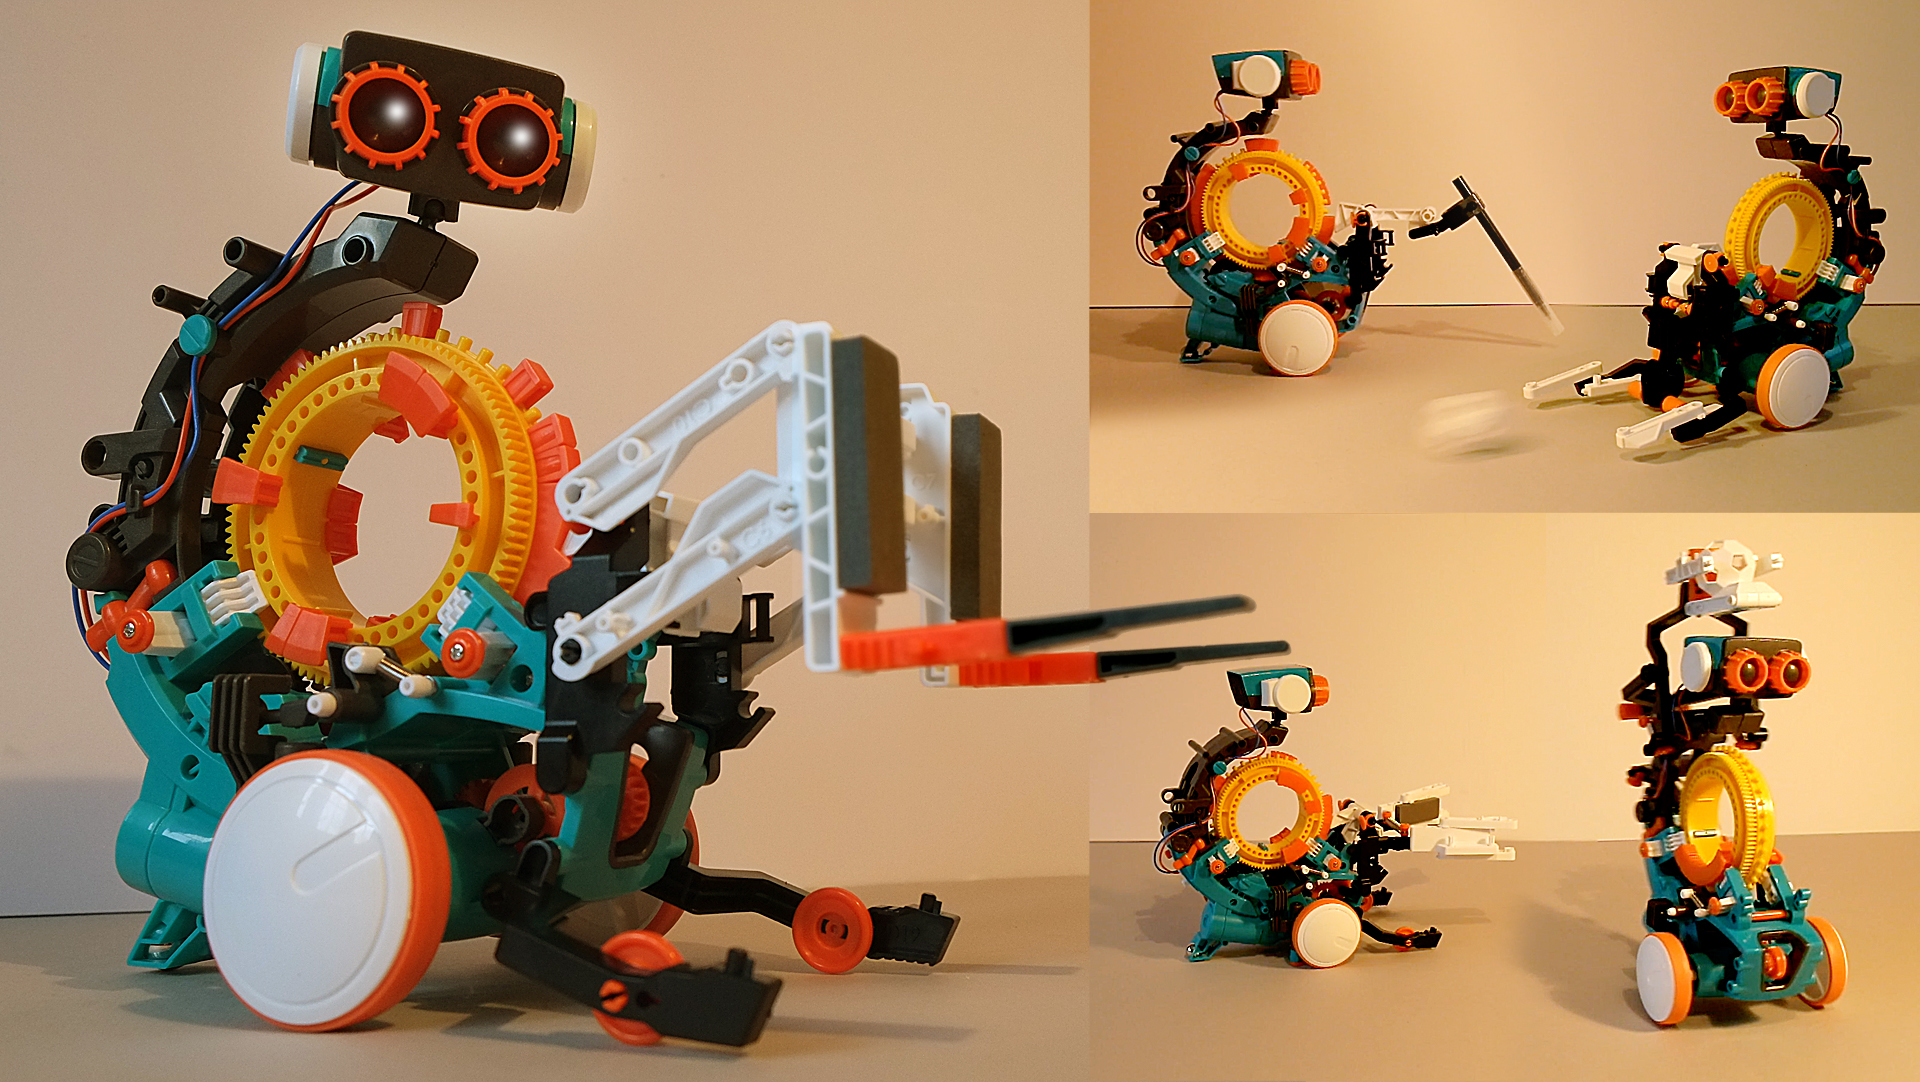 5 in 1 Mechanical Coding Robot // How to Build Step by Step